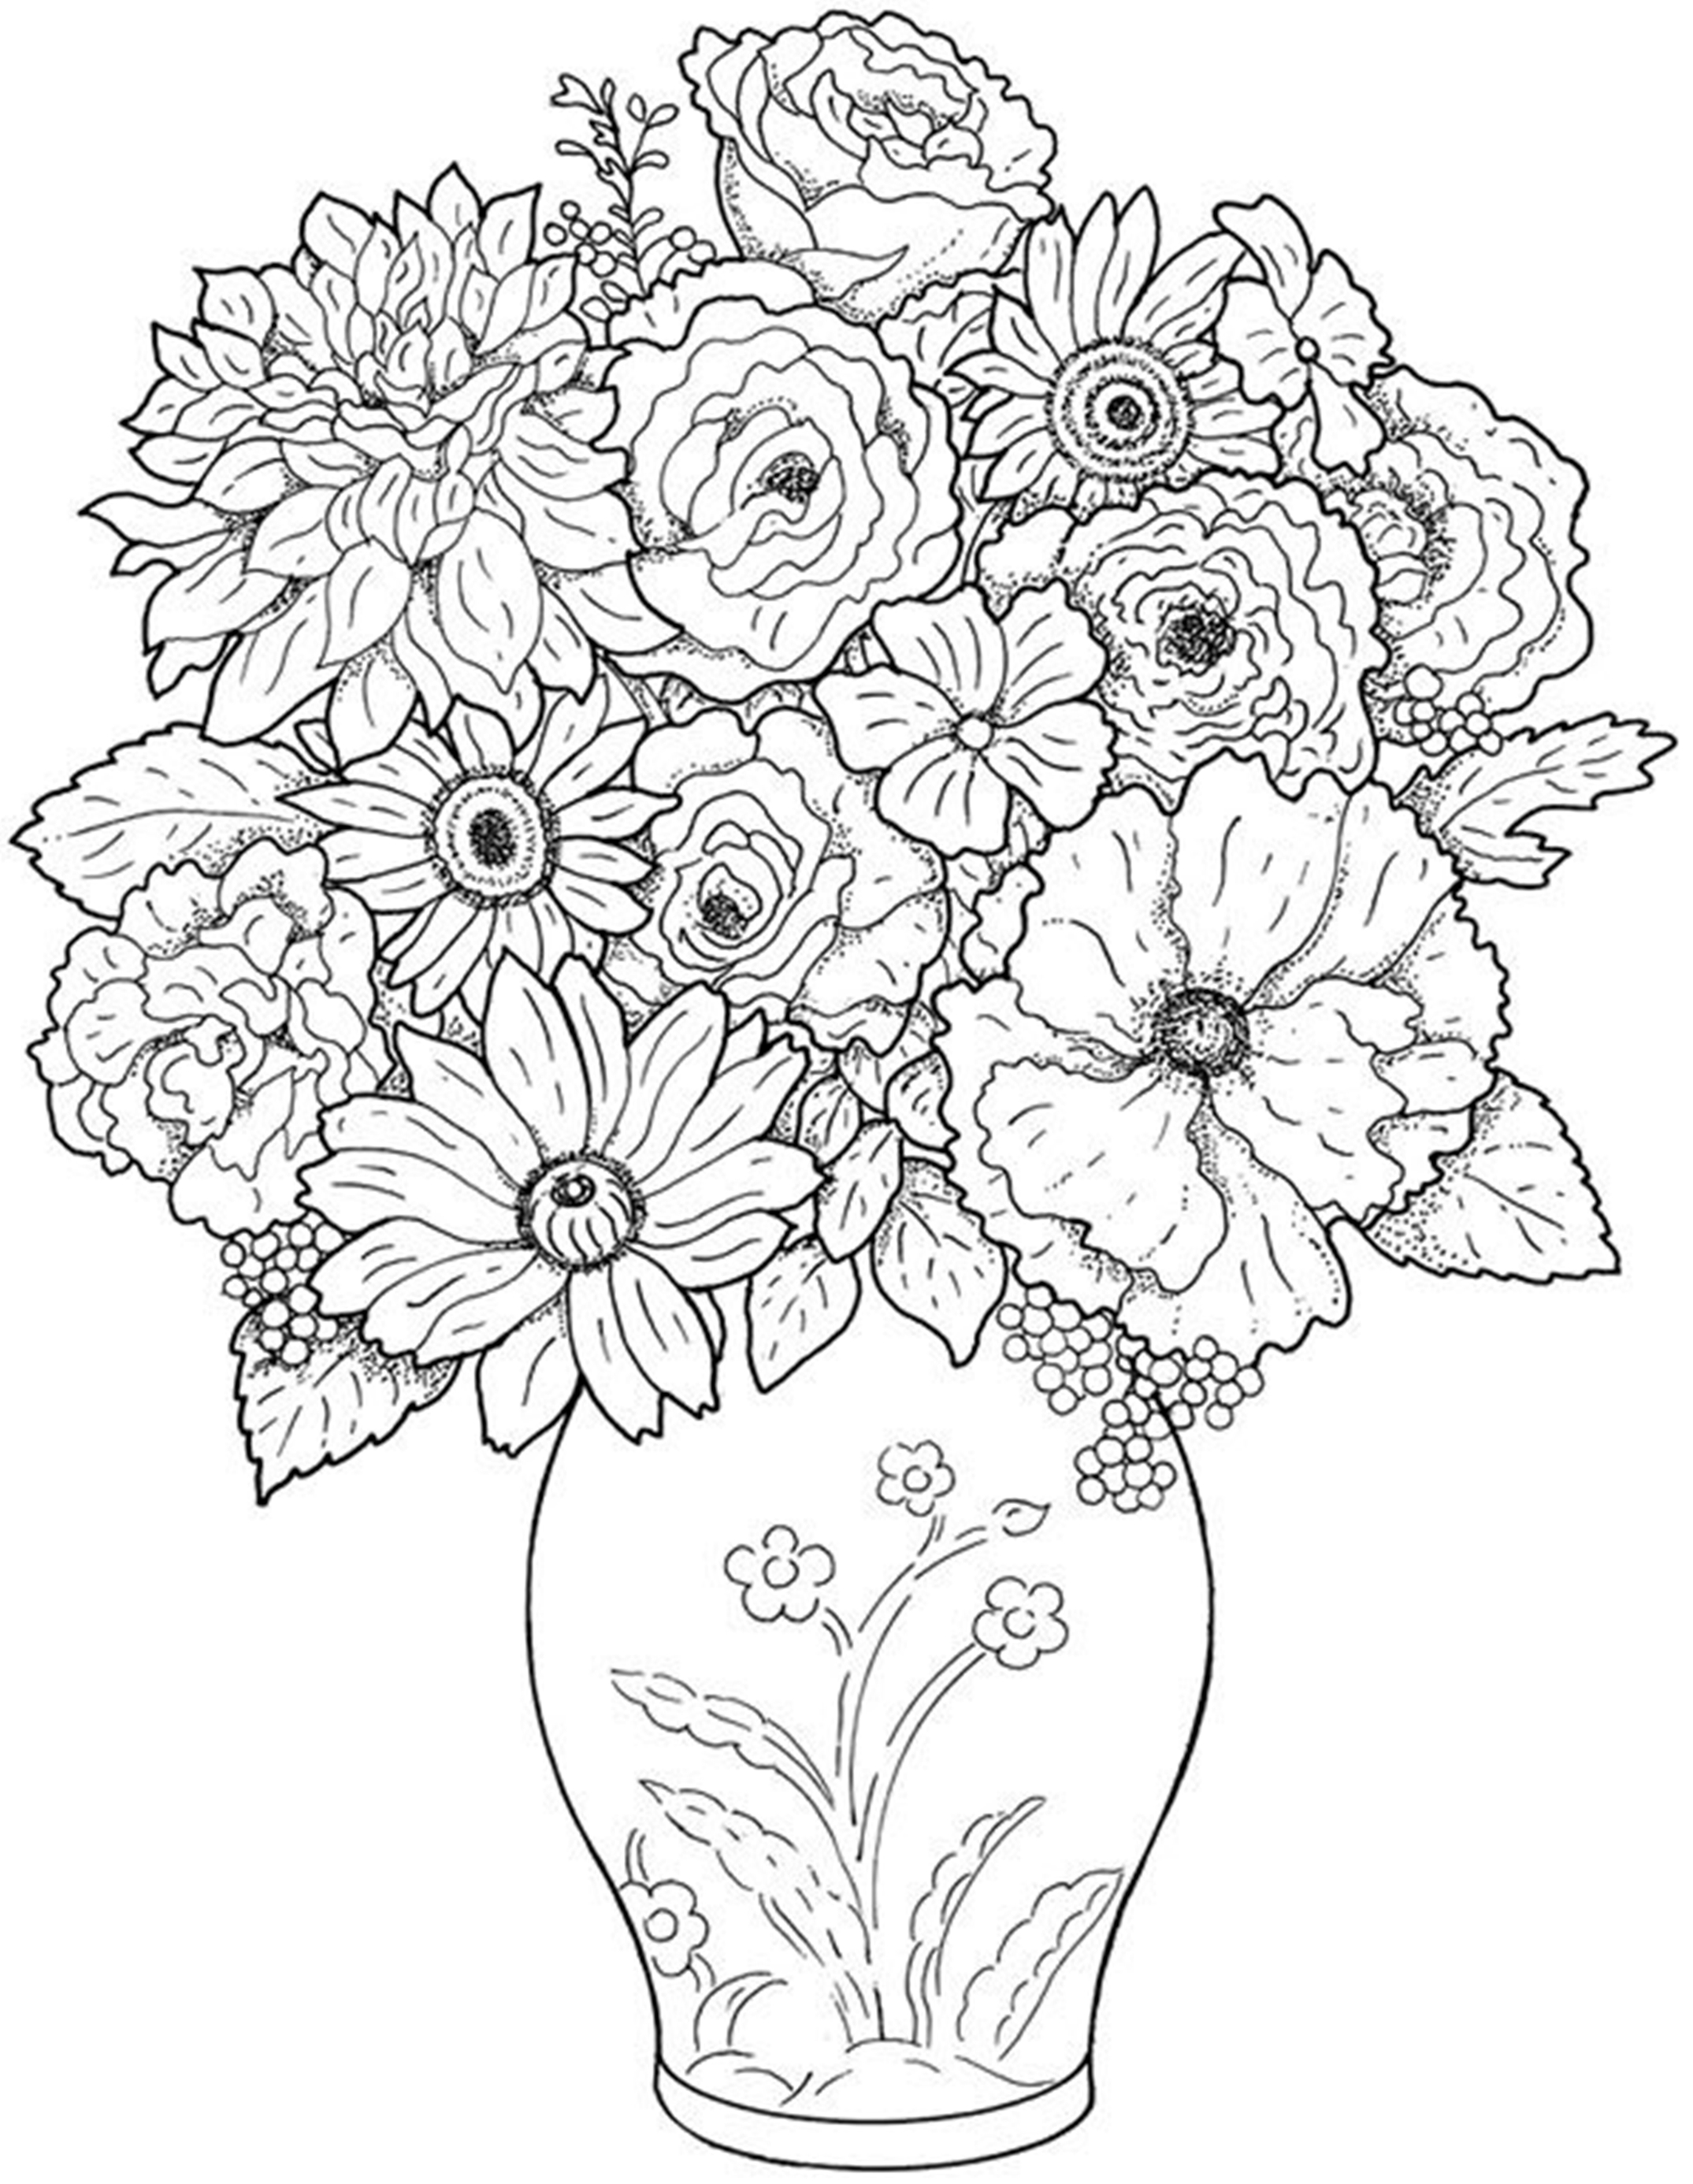 colouring pages flowers in a vase vase coloring page at getcoloringscom free printable pages vase flowers a in colouring